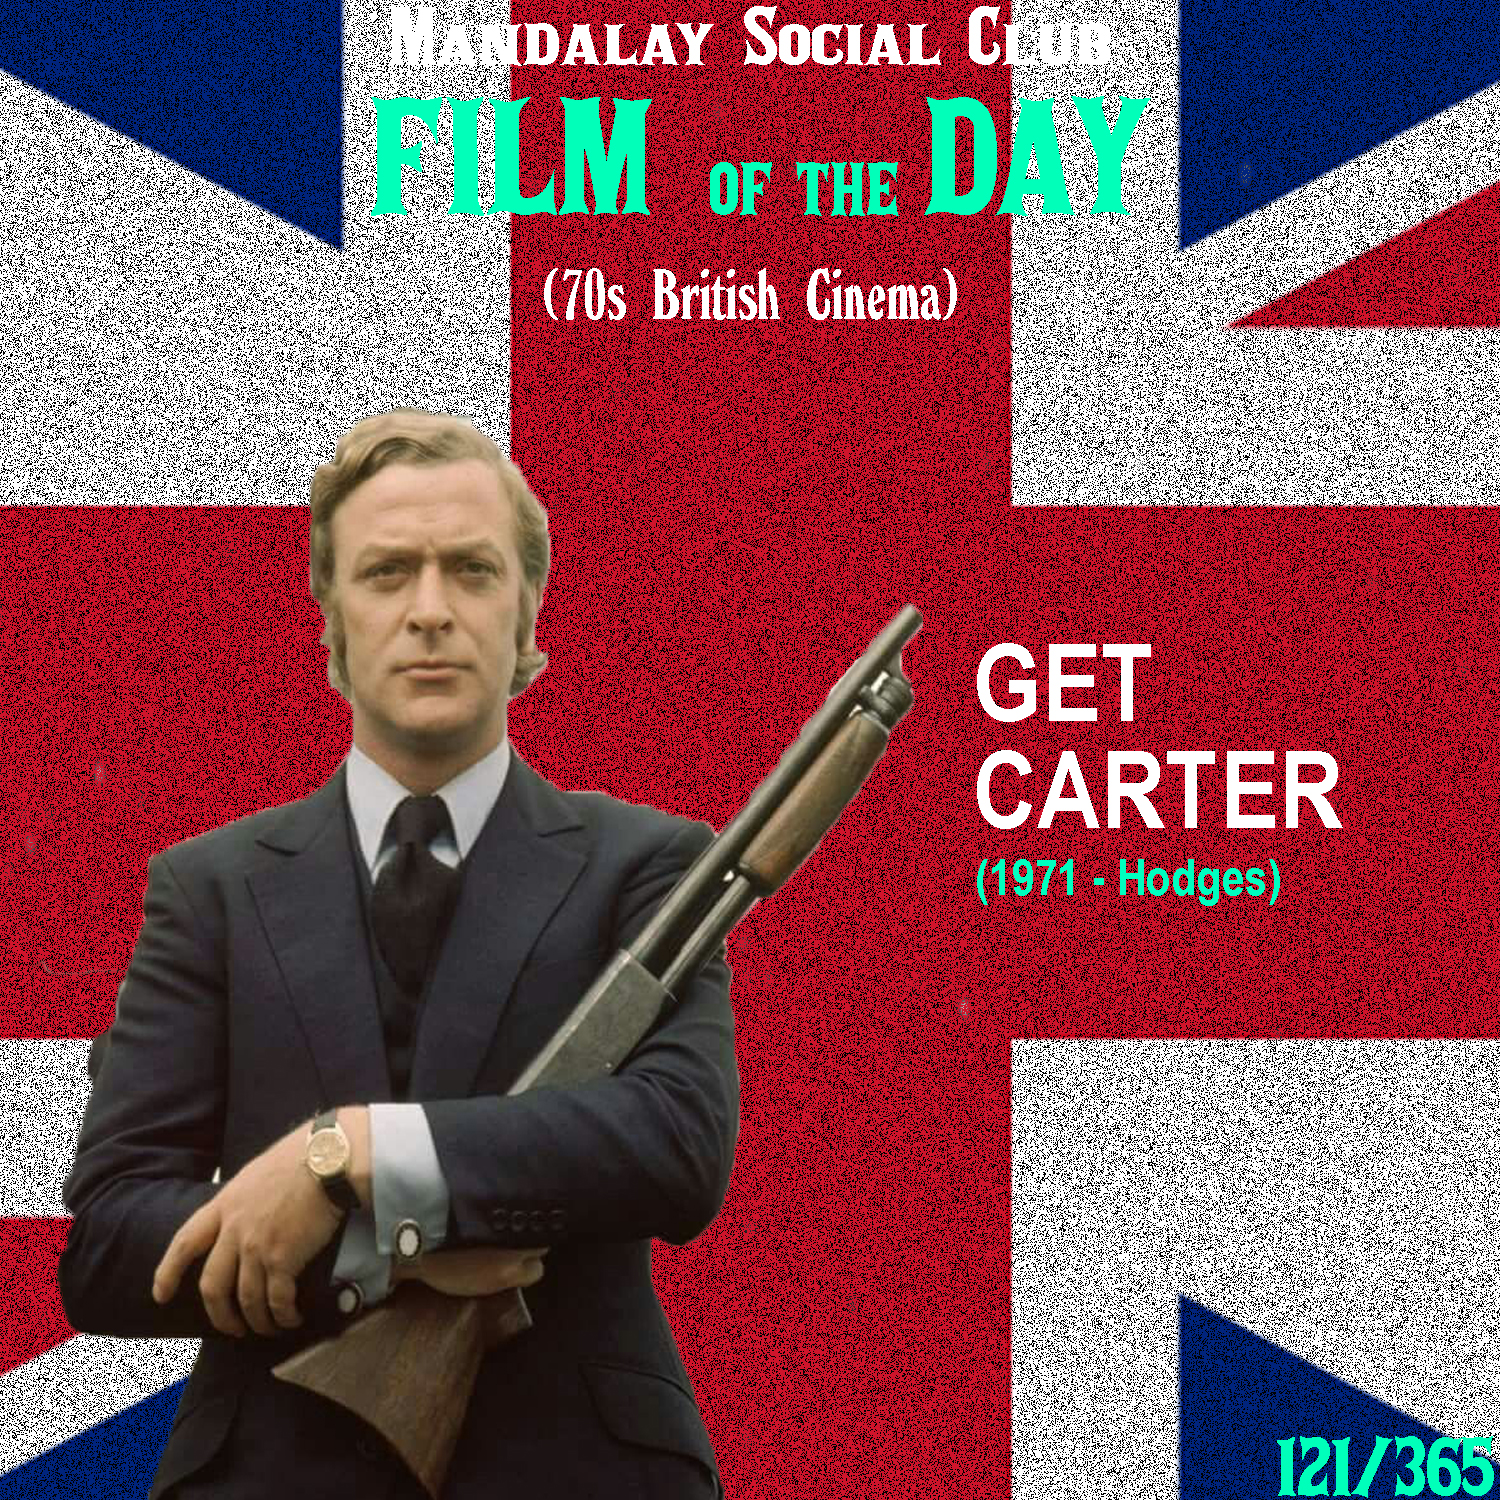 GET CARTER     (dir. Mike Hodges)   Before he was The Dark Knight's butler, Michael Caine was Jack Carter, one of the most distinguishable and revered characters in British cinema.  Caine plays Jack Carter, a London gangster who travels back to his native Newcastle to investigate the mysterious circumstances surrounding the death of his brother. The police are saying it was suicide by drunk driving, but Carter knows better than that. Carter is a serious man with little to no remorse for any of his actions and this cool demeanor of his makes for some of the most memorable moments in cinema along with an unforgettable climax.  Audiences, again, were polarized by this film. However, unlike the audiences for  Straw Dogs  who felt nothing but horror and disgust,  Get Carter  viewers were left with a real neutral feeling. The largely interconnected plot mixed with Carter's blatant, remorseless violence left viewers questioning what they had seen and it wasn't until many years later when young directors praised this film, that it was re-evaluated. Mike Hodges made his directorial debut with this film and in fact, Michael Caine really helped characterize this Jack Carter character. So much so, that he earned a production credit for it.    4/5     WATCH: Putlocker, iTunes